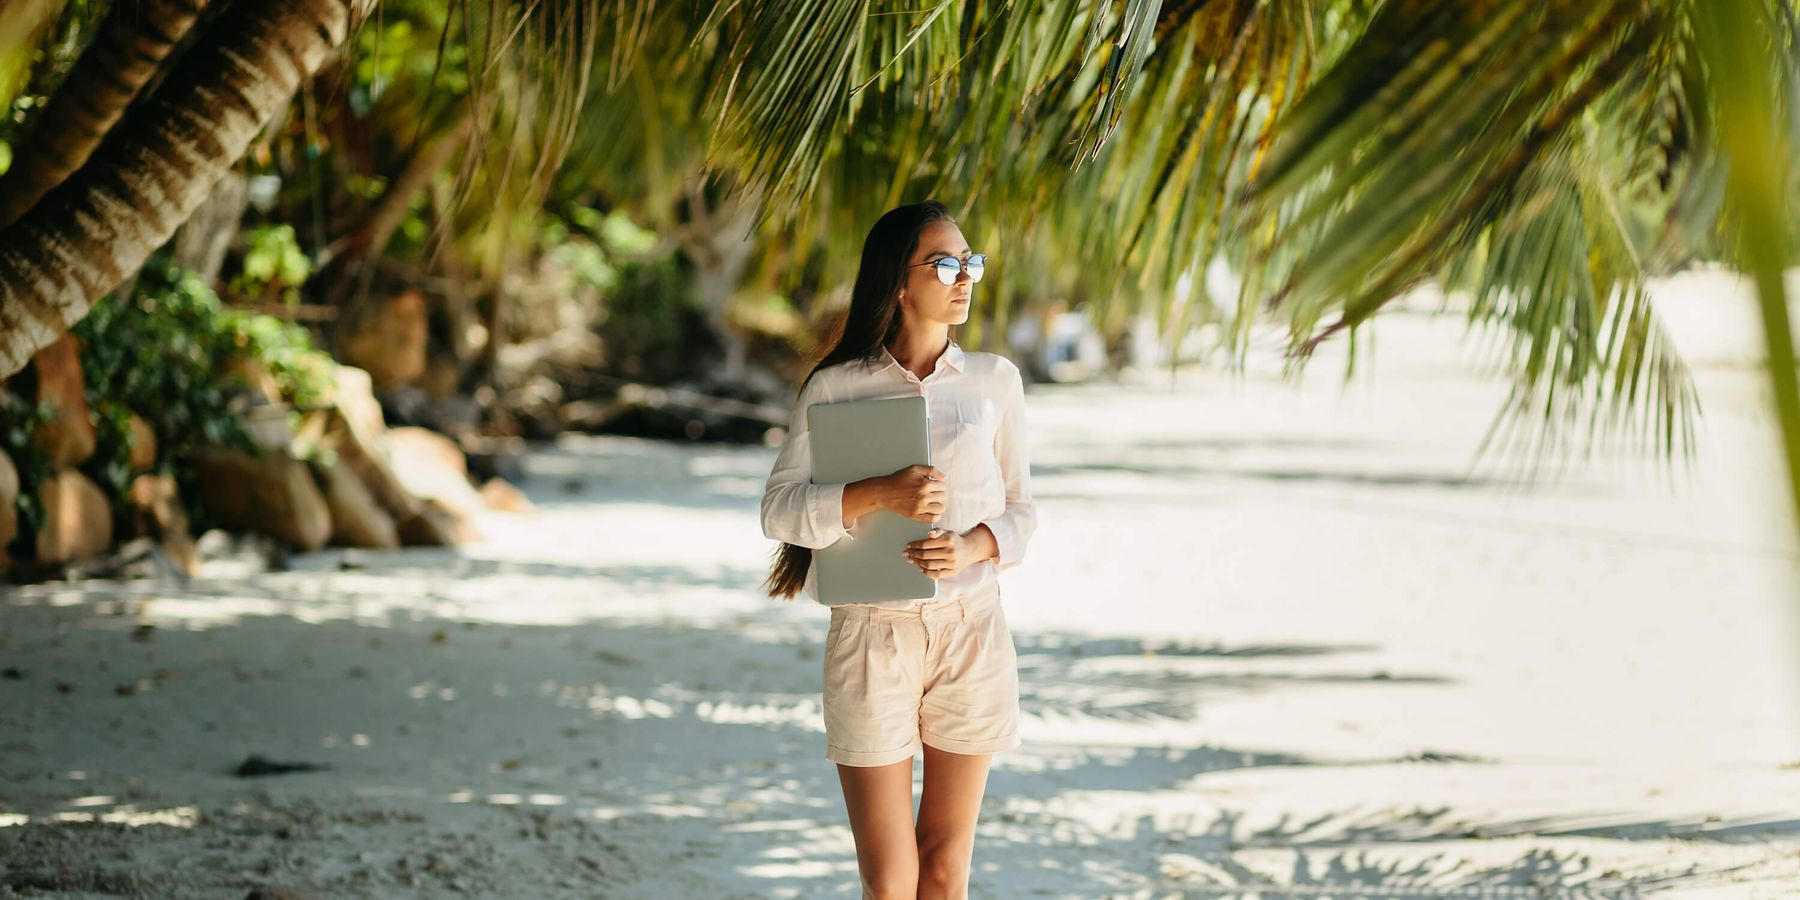 Person holding a laptop on a tropical beach with palm trees